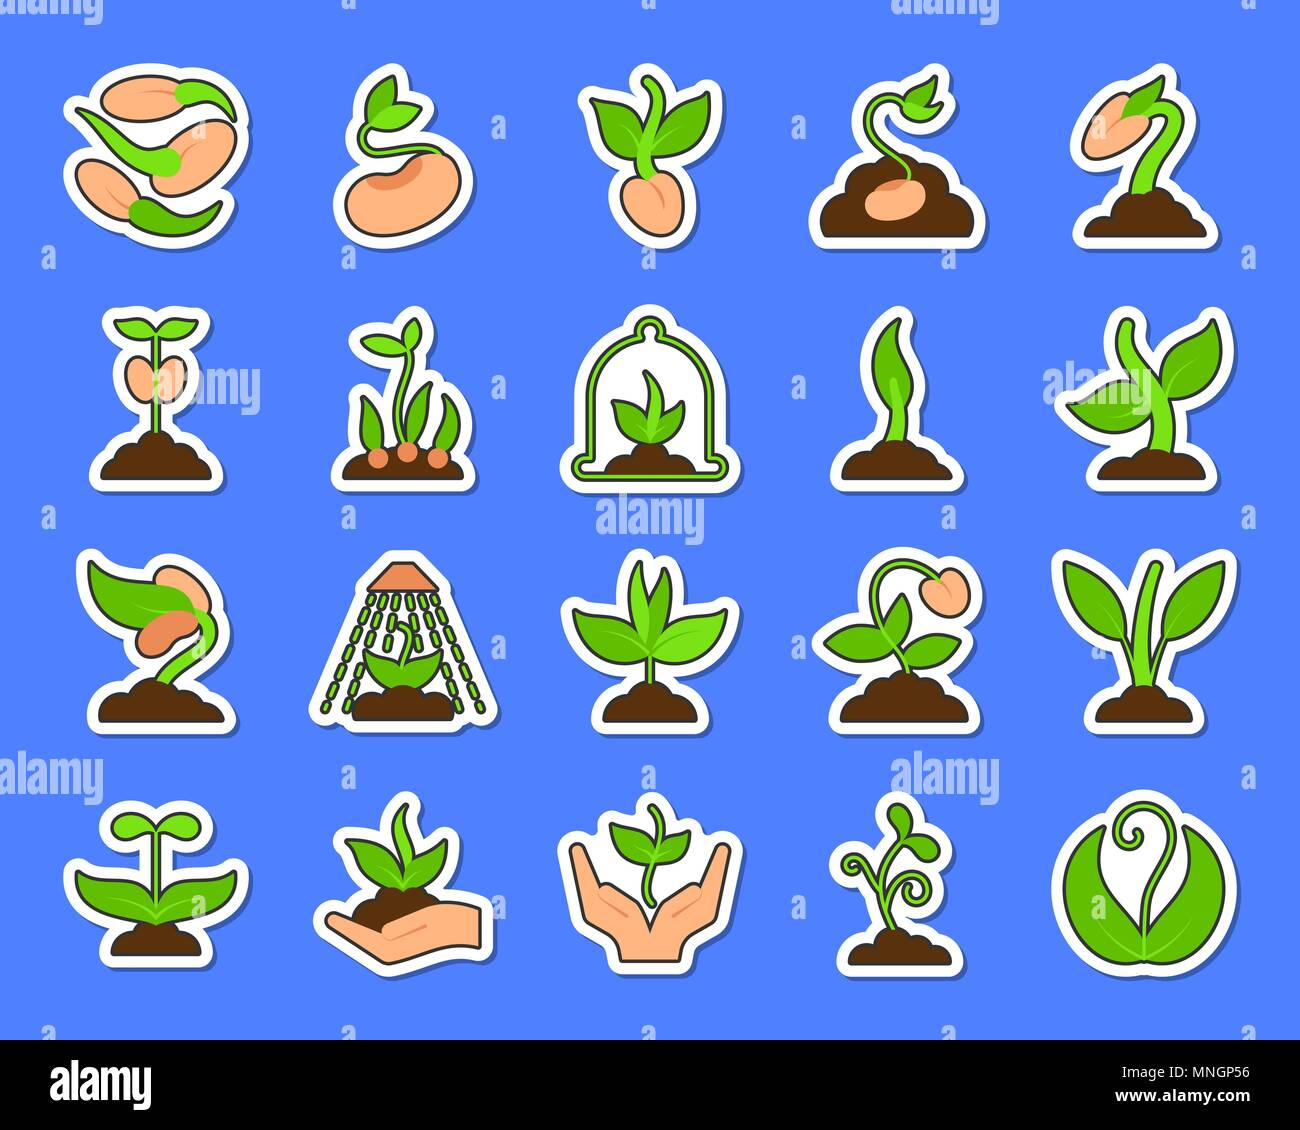 Sprout sticker icons set. Web flat sign kit of seeds. Plant pictogram collection includes tree, leaves, growing. Simple green sprout symbol. Colorful  - Stock Vector